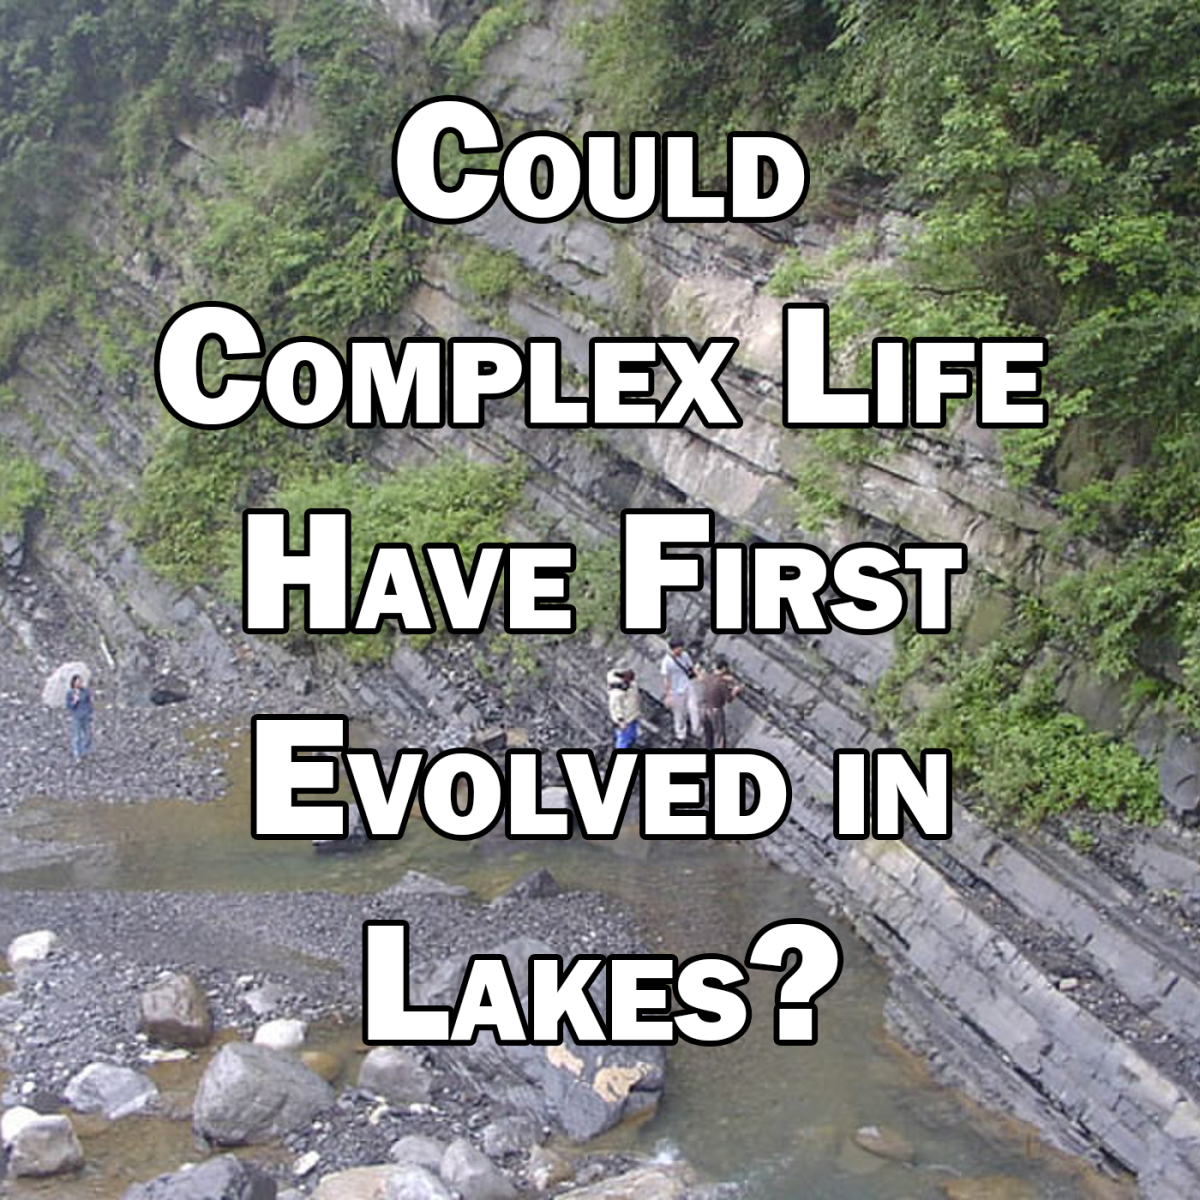 Could Complex Life Have First Evolved in Lakes?